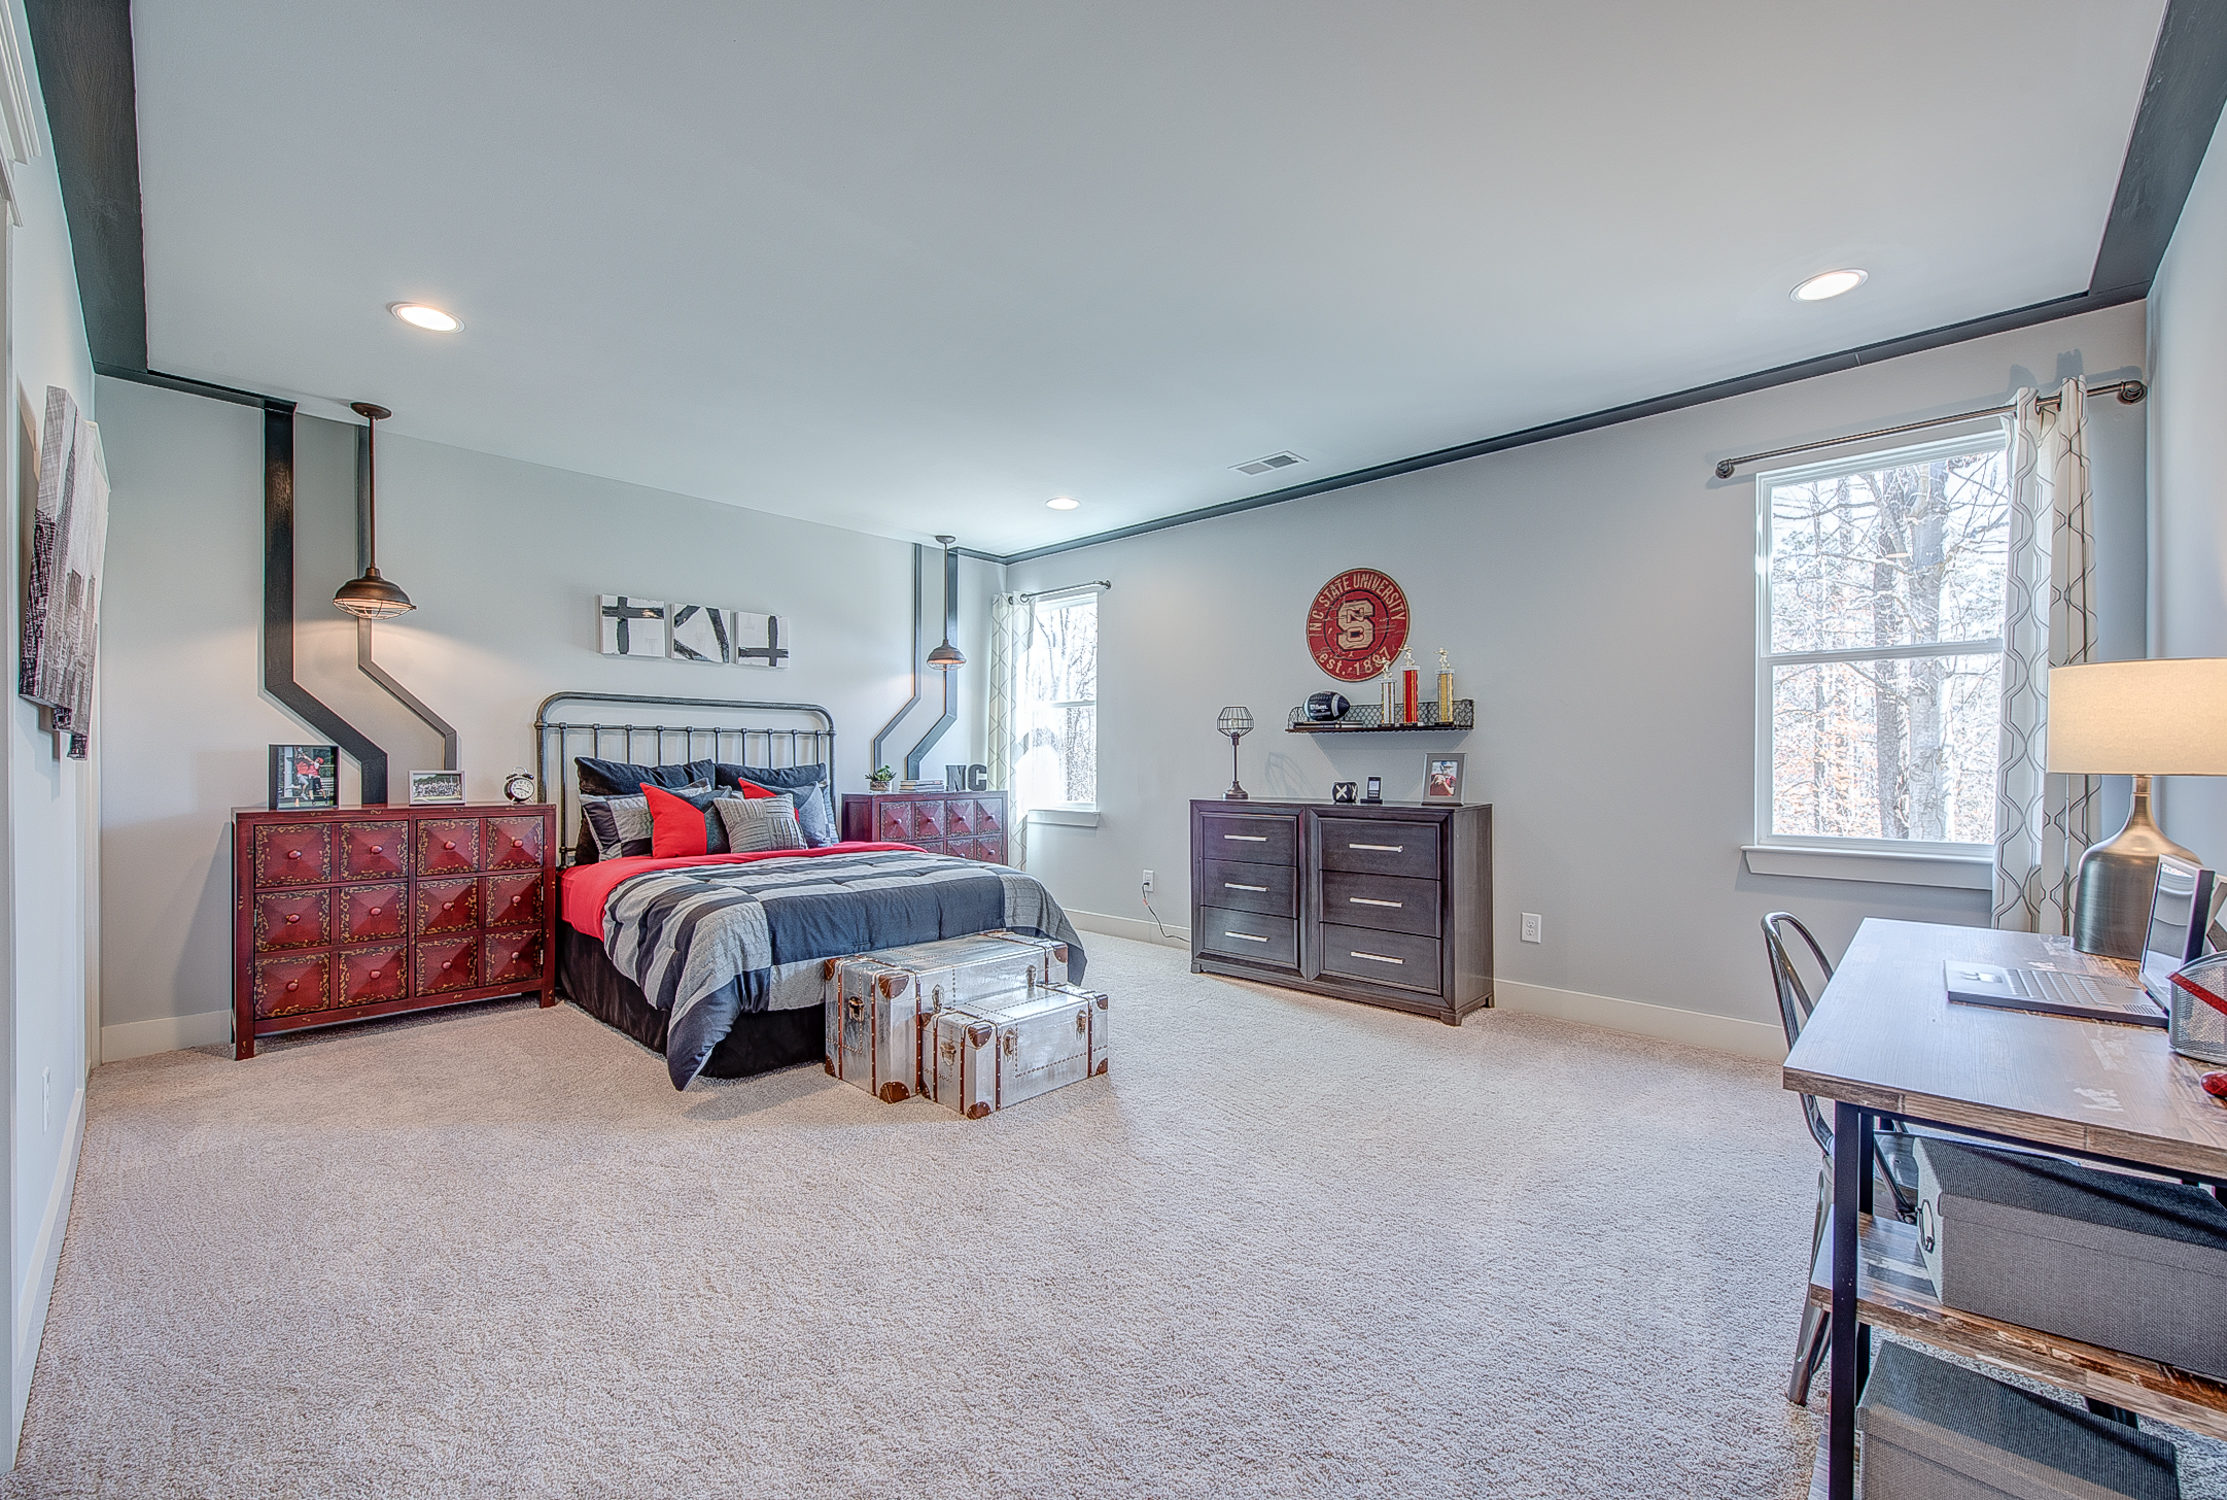 104-bushney-loop-mooresville-print-035-23-lower-level--bedroom-2227x1500-300dpi_33601253512_o.jpg